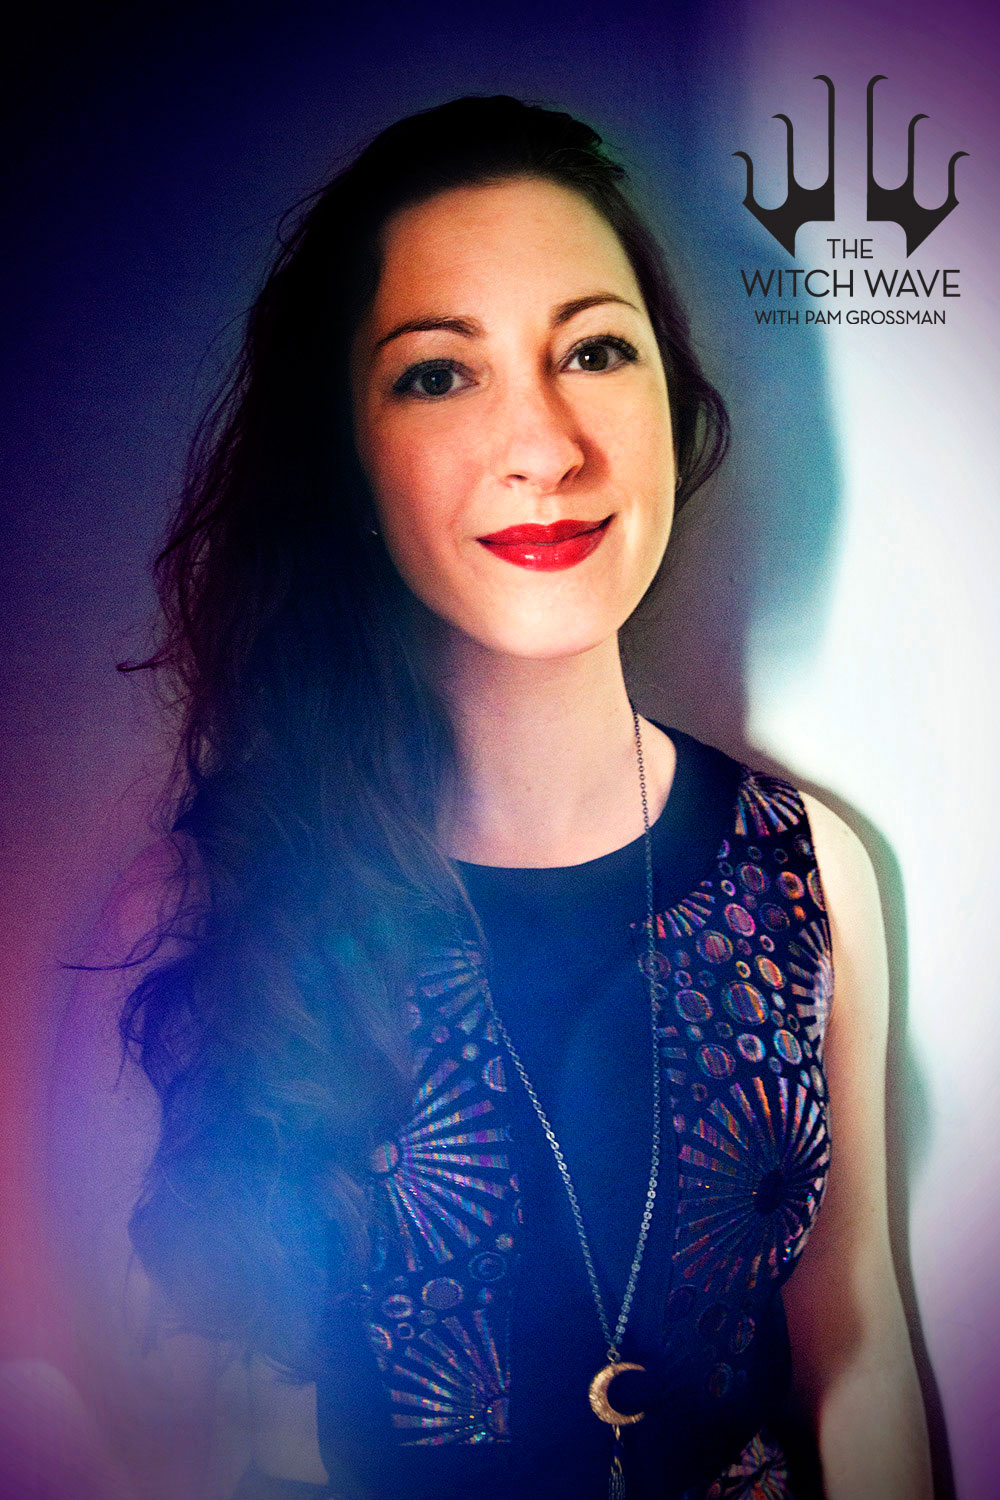 The Witch Wave - The Witch Wave is a podcast for bewitching conversation about magic, creativity, and culture. On each episode, creator and host Pam Grossman speaks with a leading visionary about art and Craft.It launched in October 2017, and became #2 in the Spirituality category on iTunes.